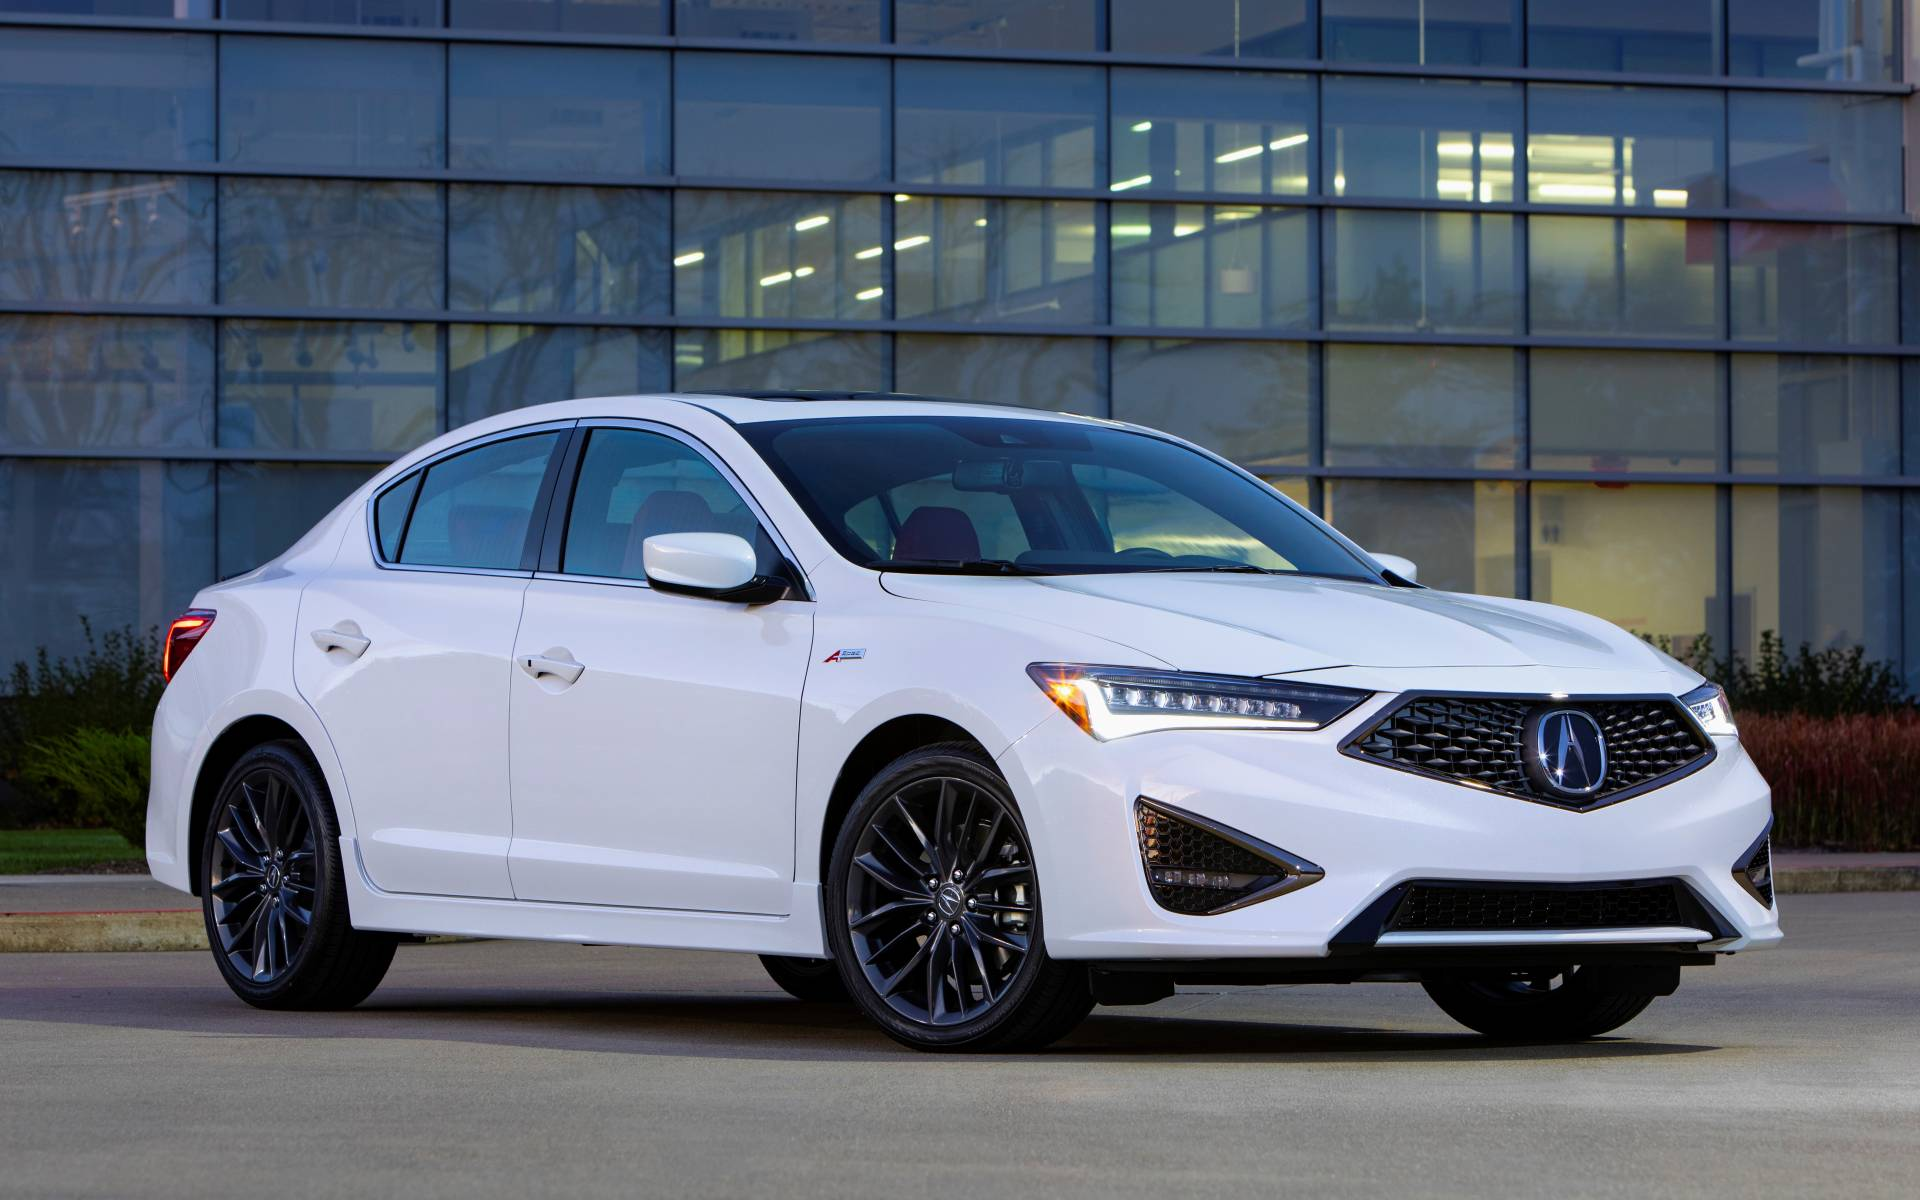 2020 Acura Ilx News Reviews Picture Galleries And Videos The Car Guide